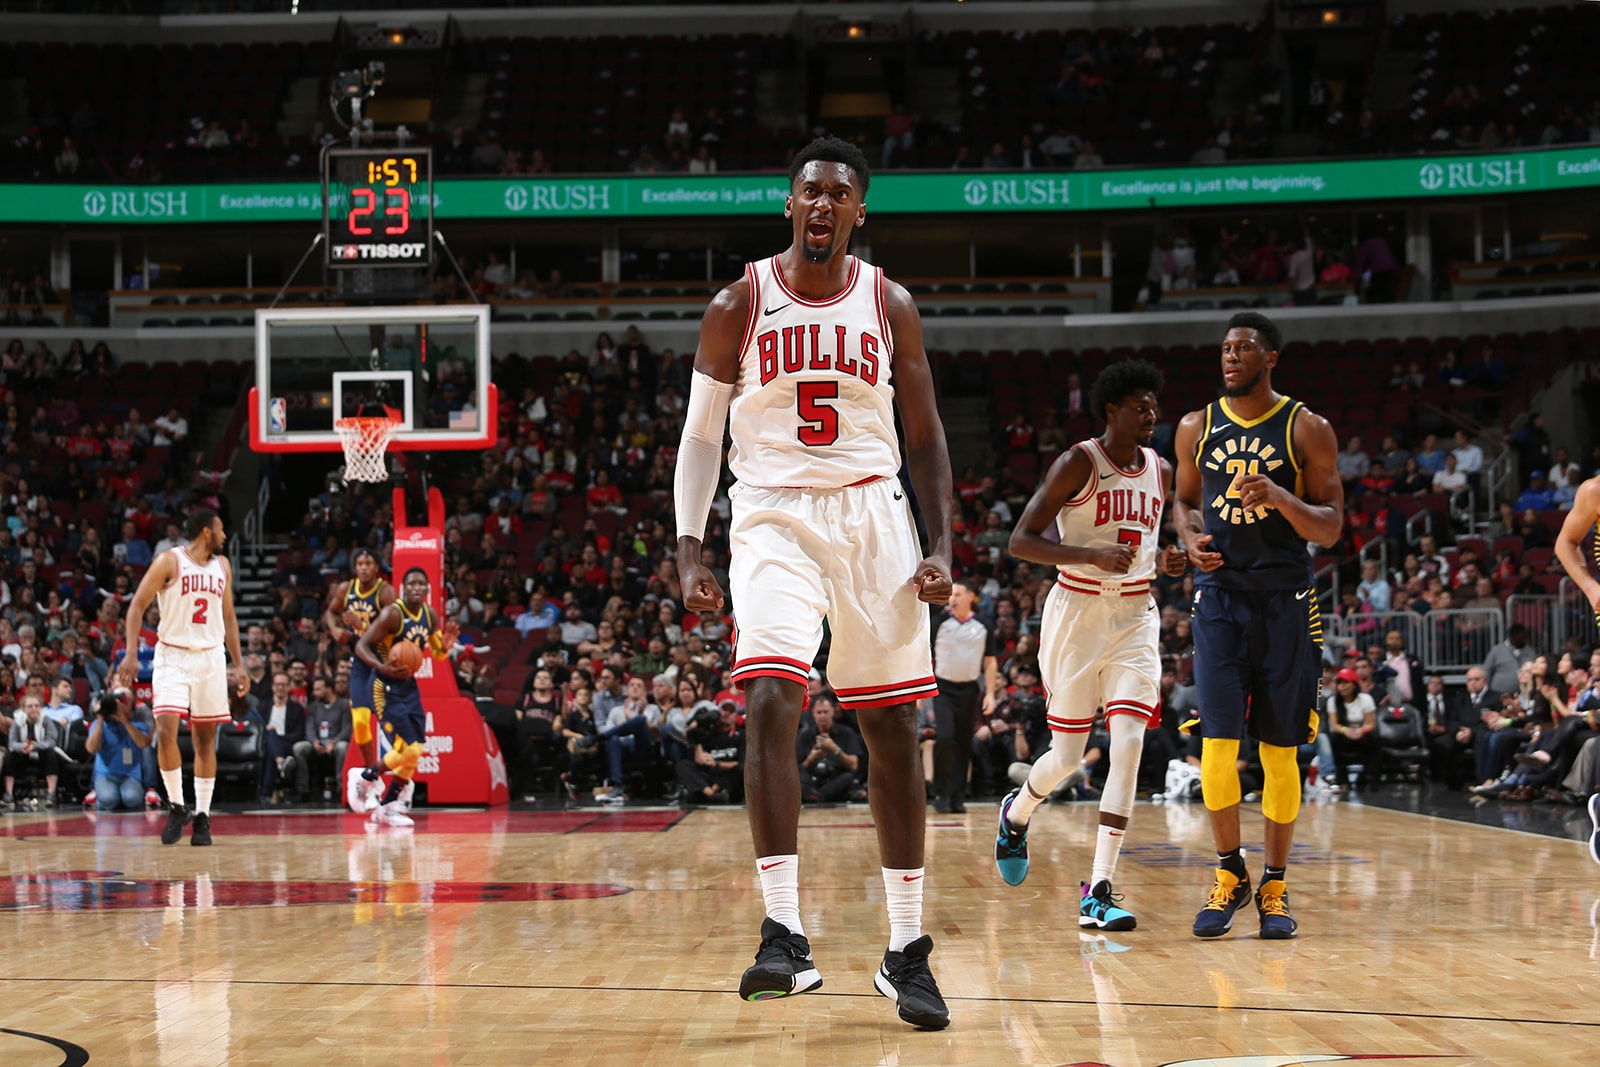 Bobby Portis against the Pacers